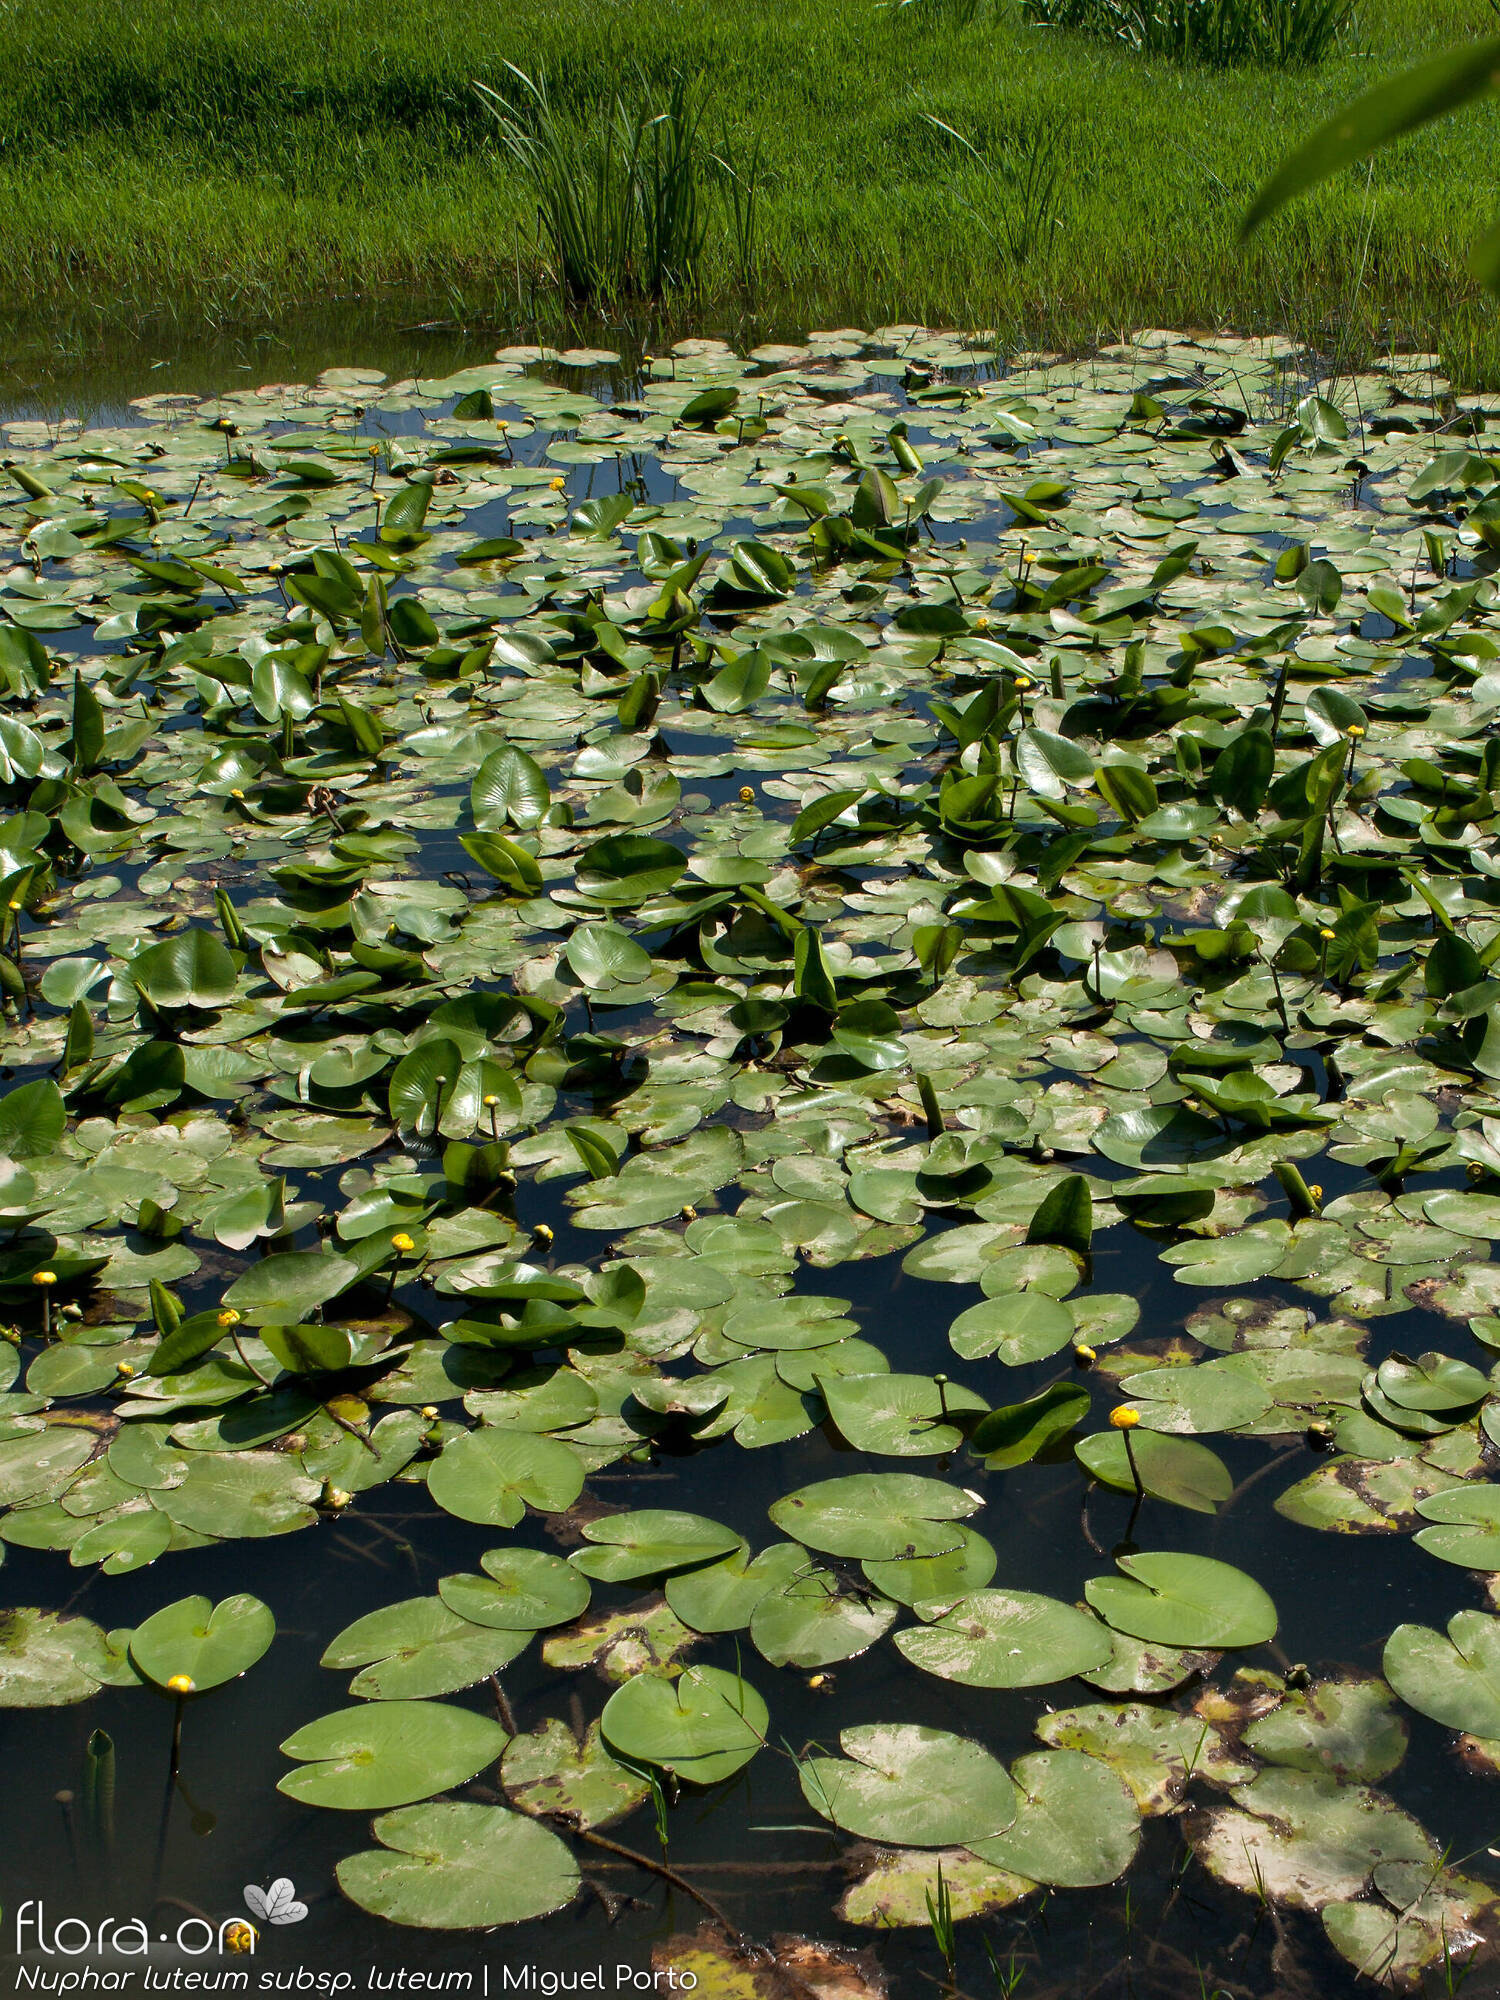 Nuphar luteum luteum - Habitat | Miguel Porto; CC BY-NC 4.0